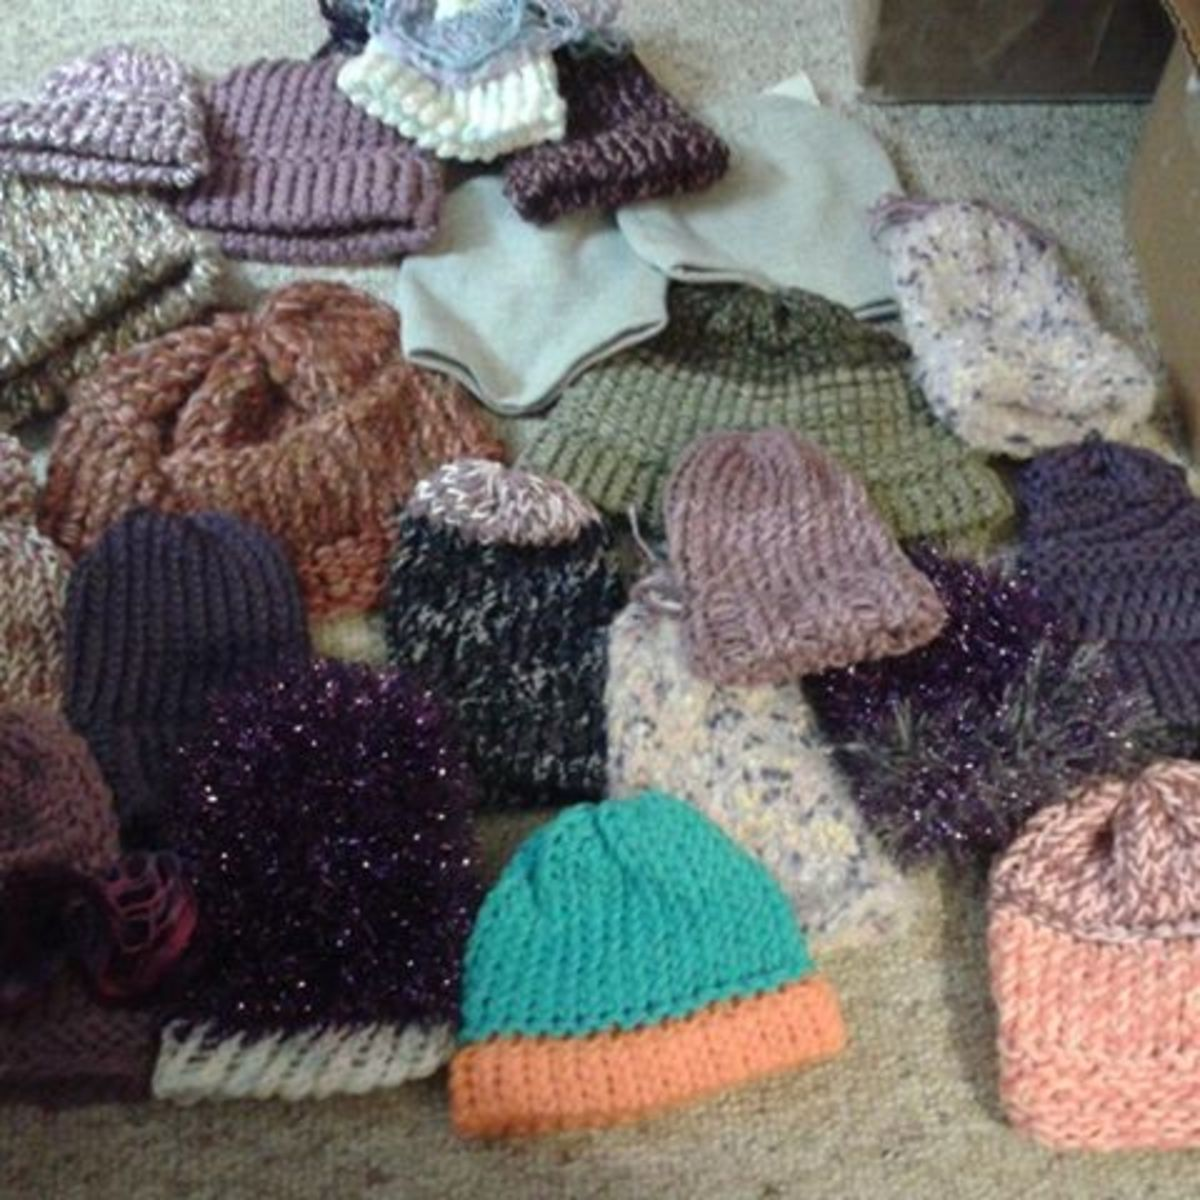 Loom Knitting for Charity | HubPages